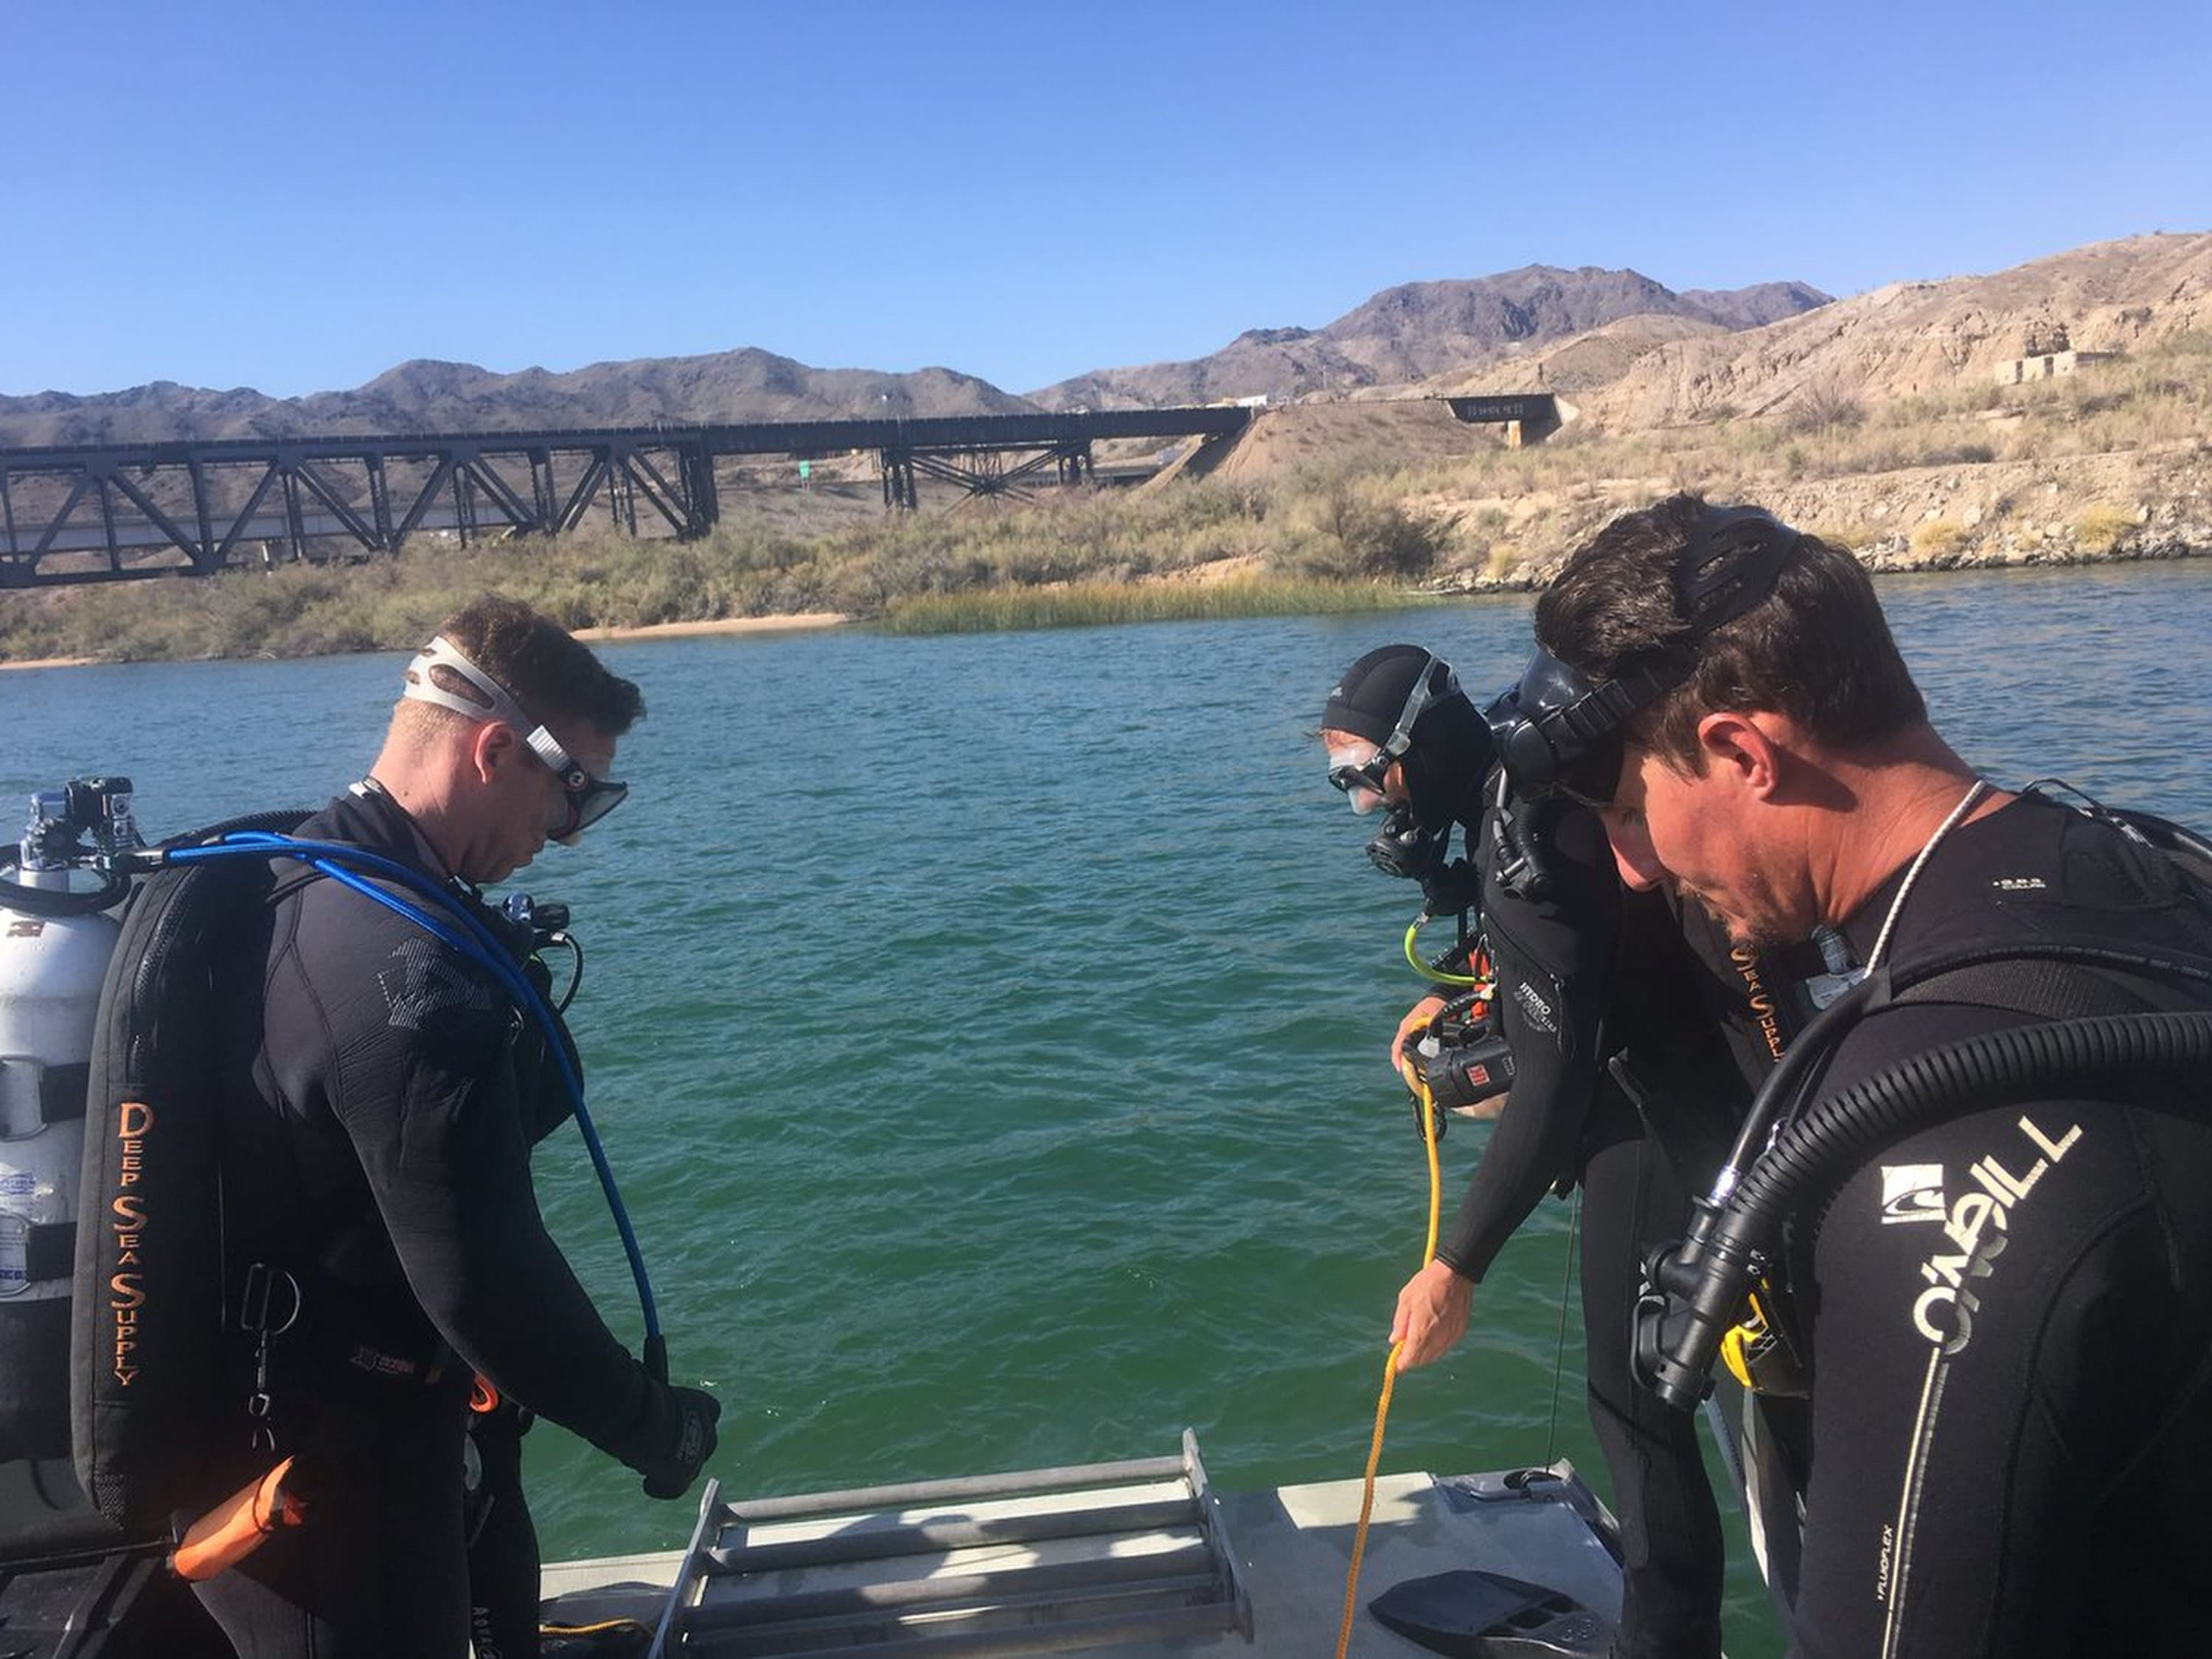 Body of 1 person found after boats crash on Colorado River